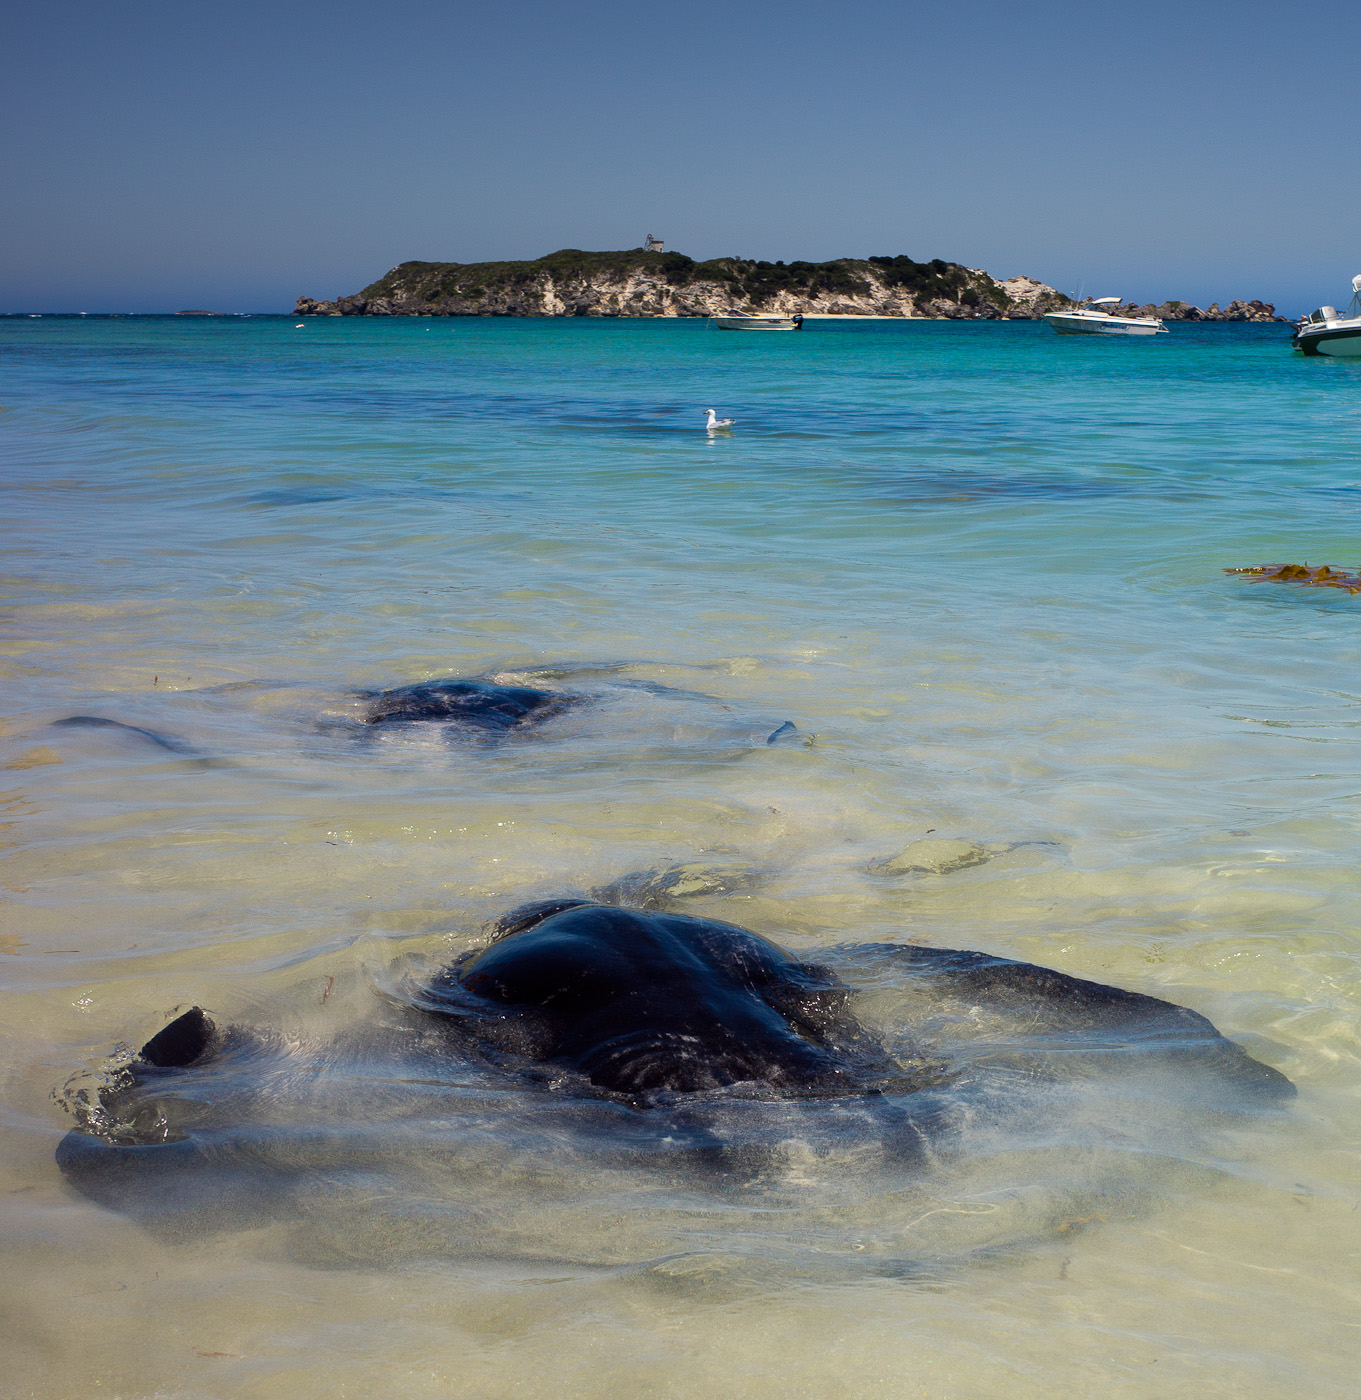 A group of Stingrays in Hamelin Bay, Western Australia. Sony NEX-5n, Biogon 25/2.8 by Zeiss